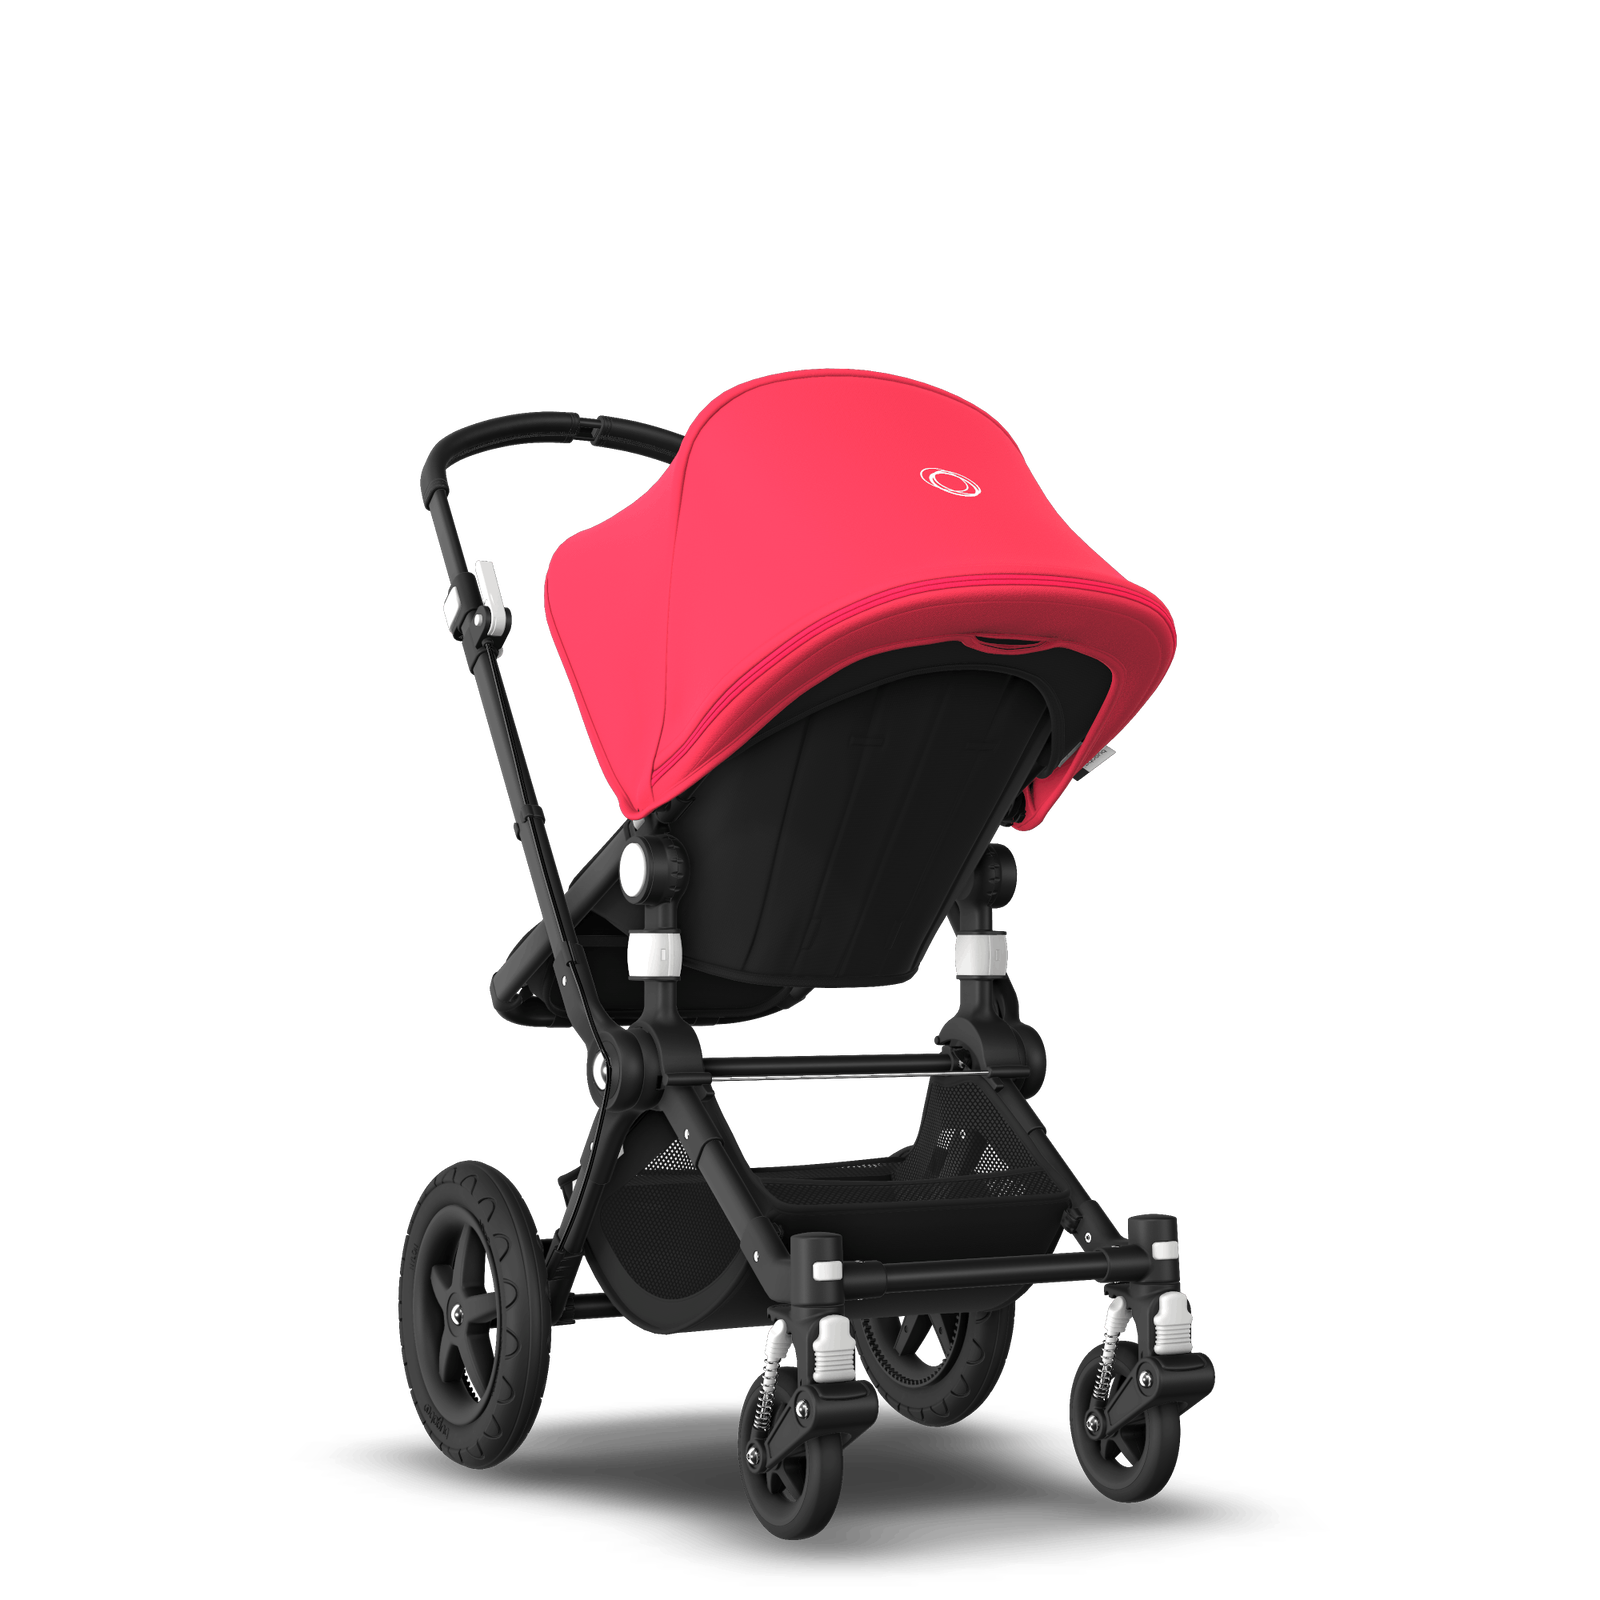 Bugaboo Cameleon 3 Plus Seat and bassinet stroller